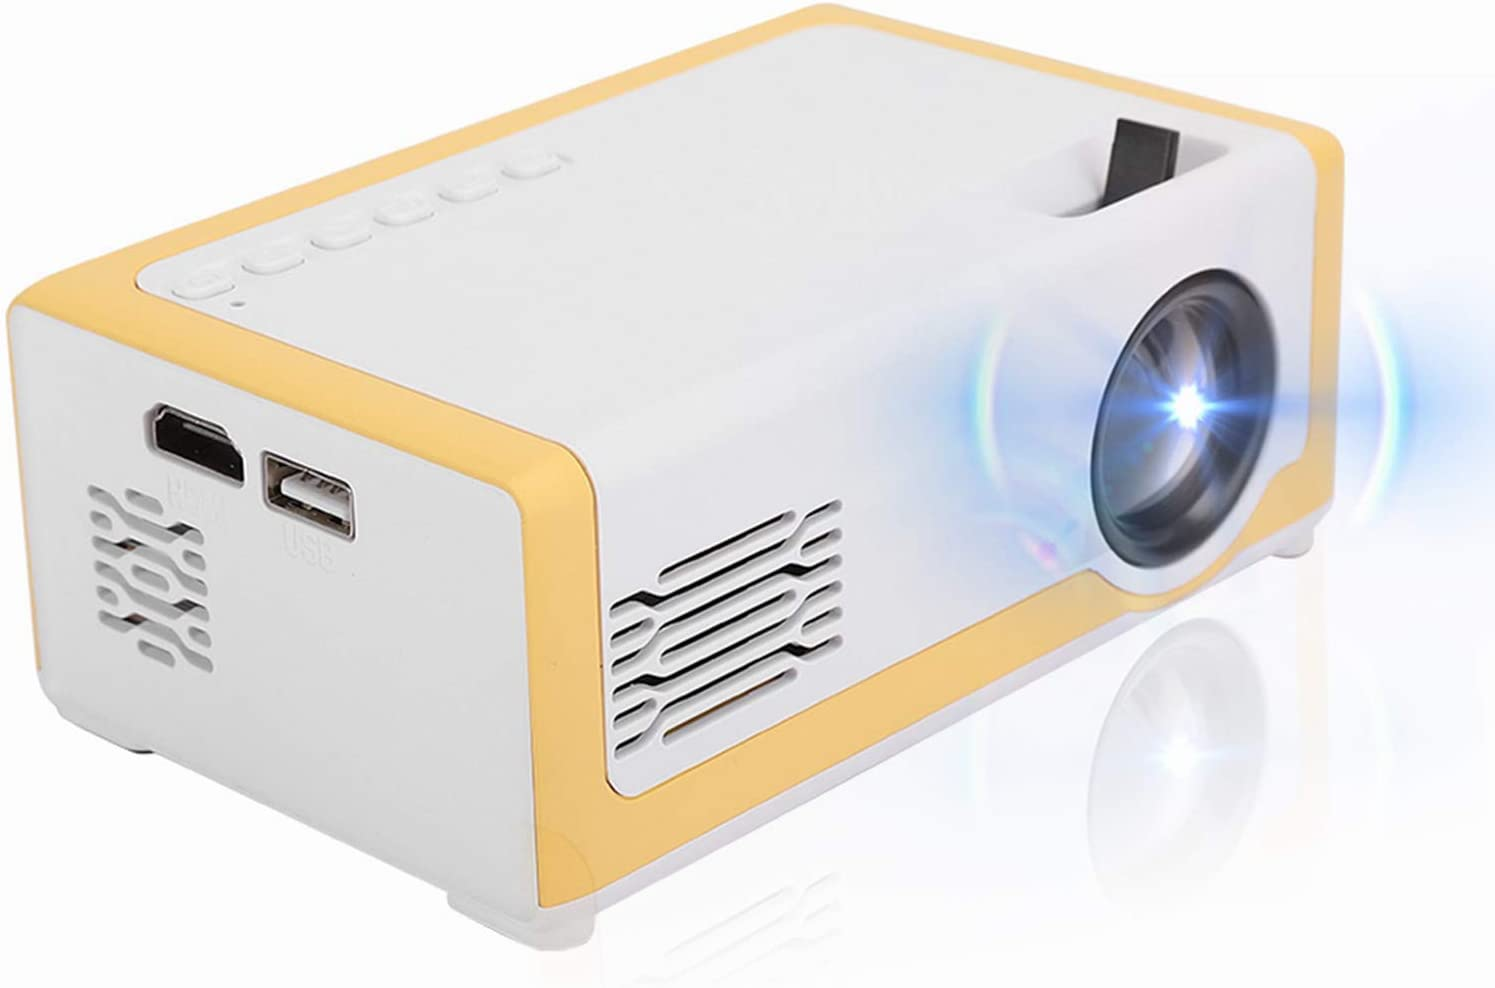 Mini Projector, Portable LED Full Color HD Video Projector 16:9 Screen Indoor Movie Projector for Home Theater with Support AV/HDMI/USB/SD /Memory Card, Remote Control